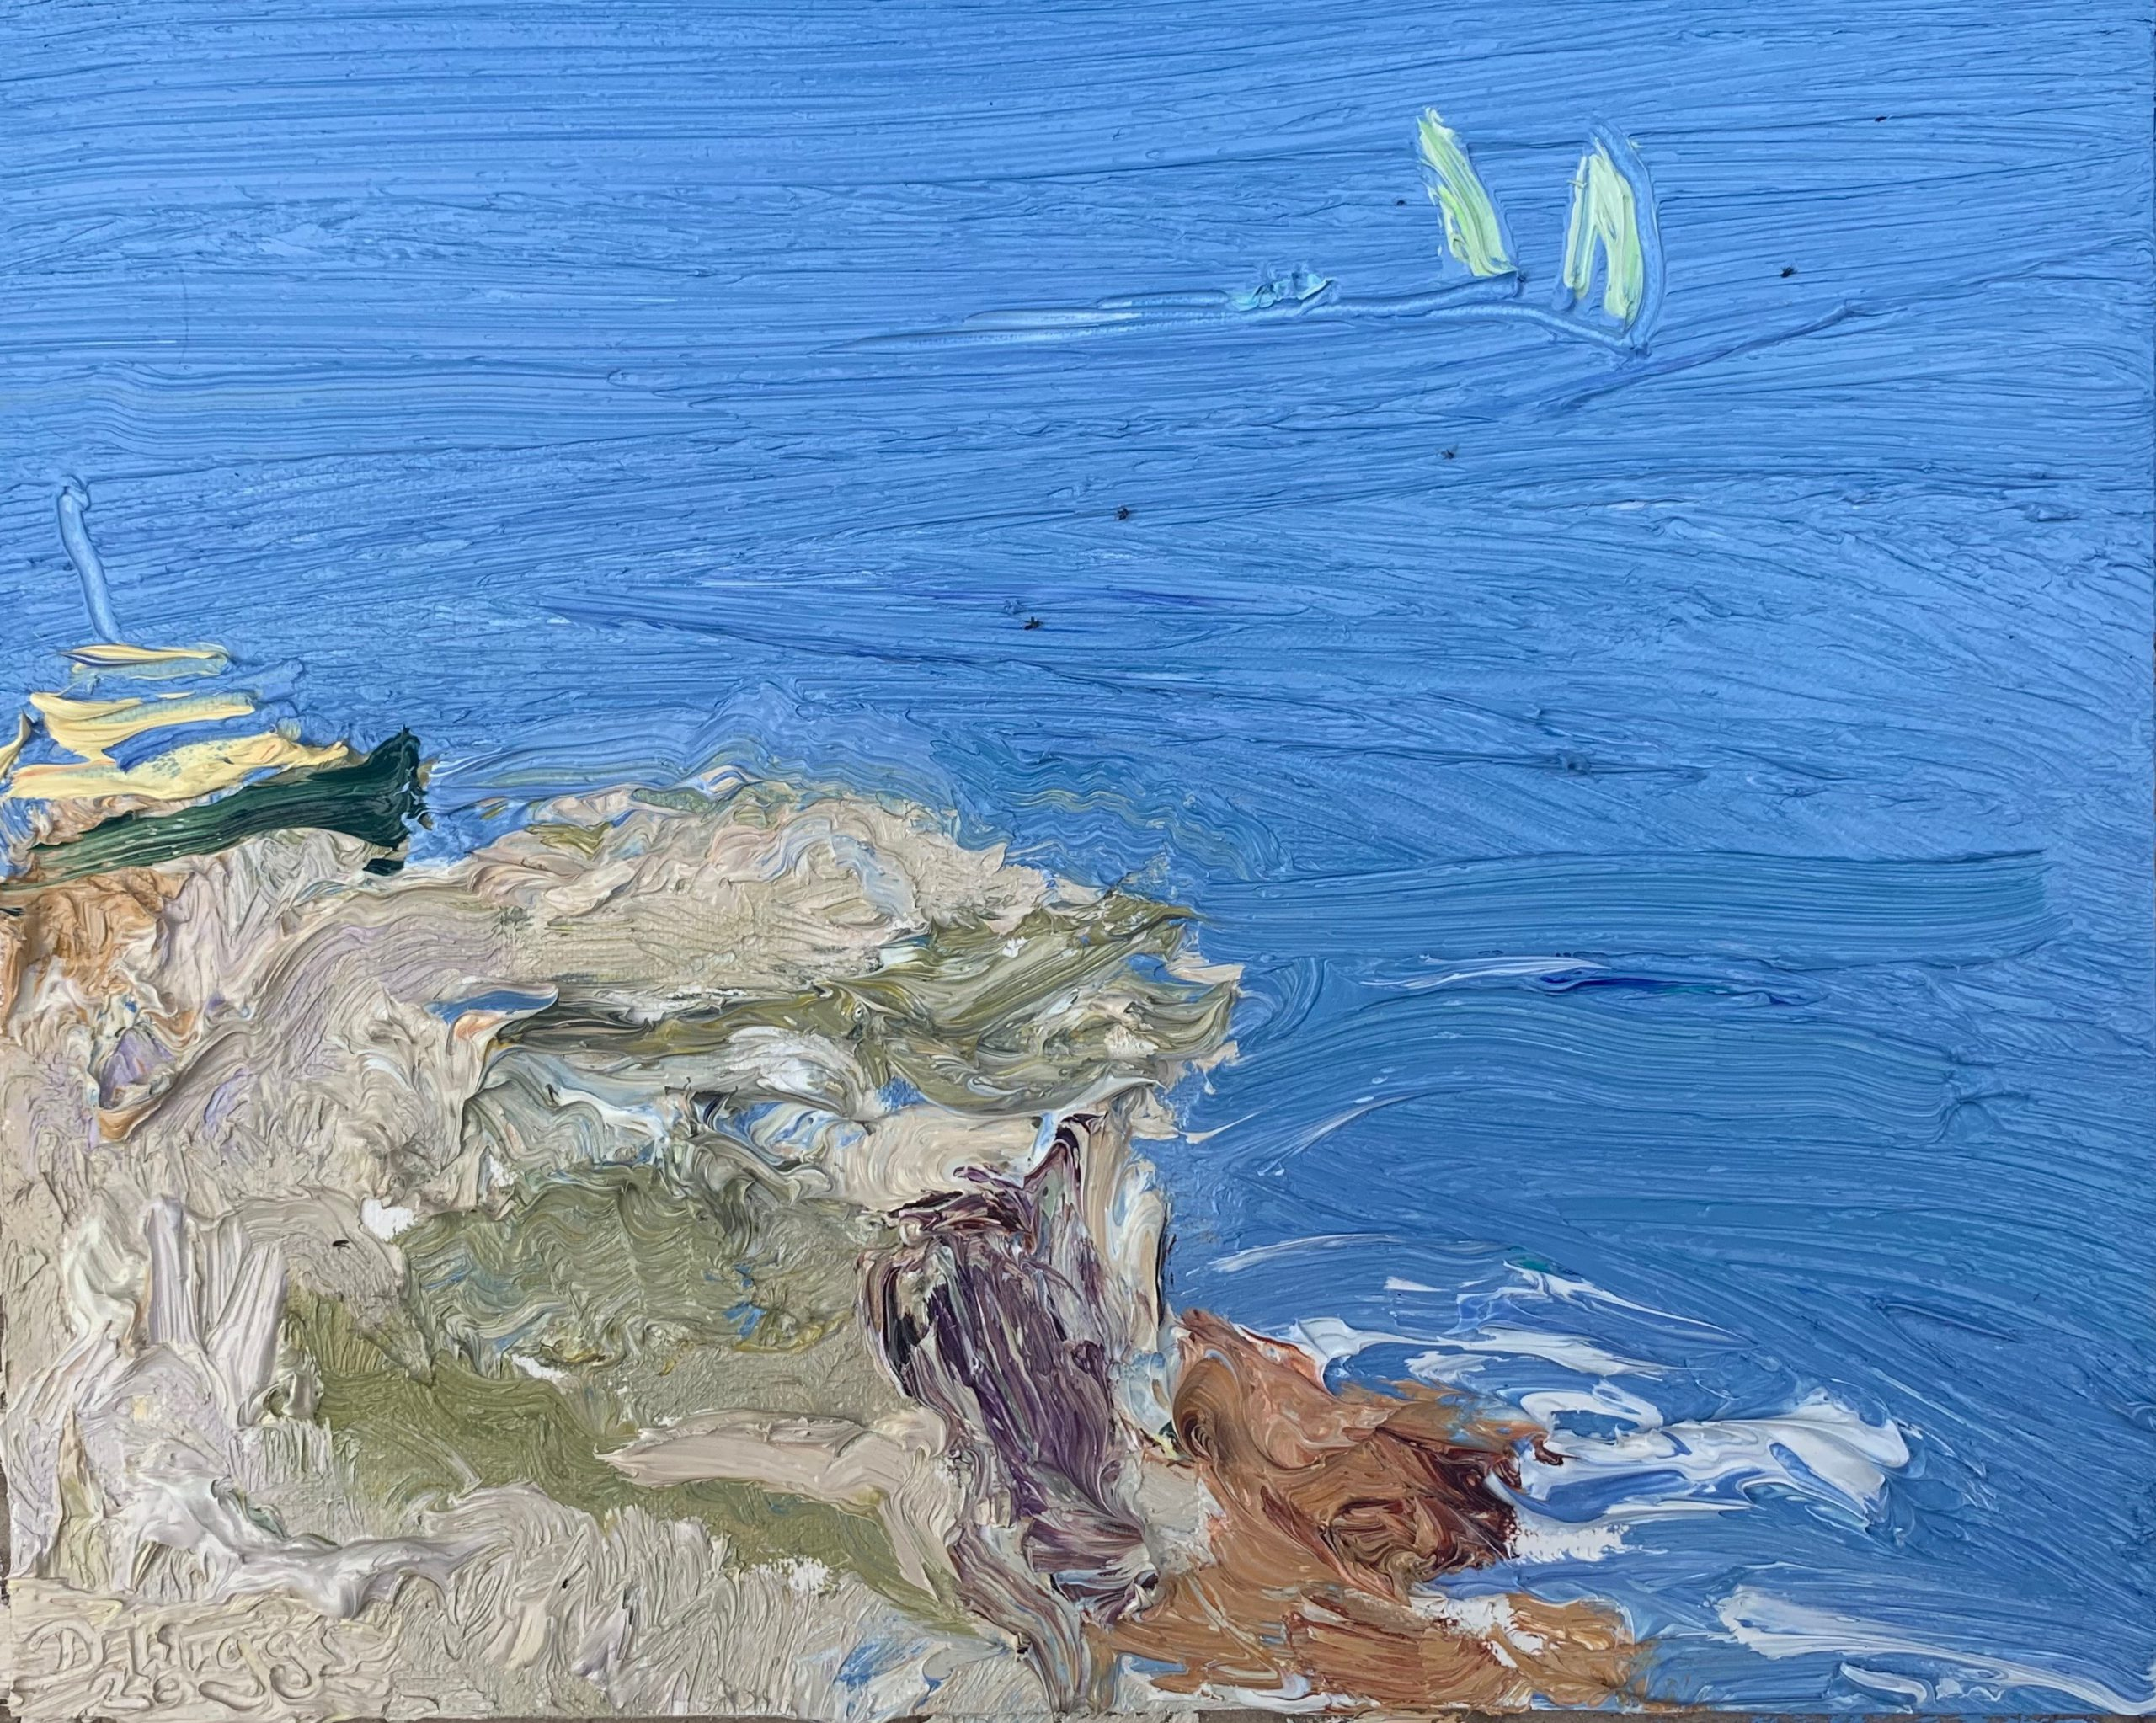 Manly ferry and sailing school past Dobroyd-Plein air-Oil on oil paper-50cm x 55cm framed-David K Wiggs 2020